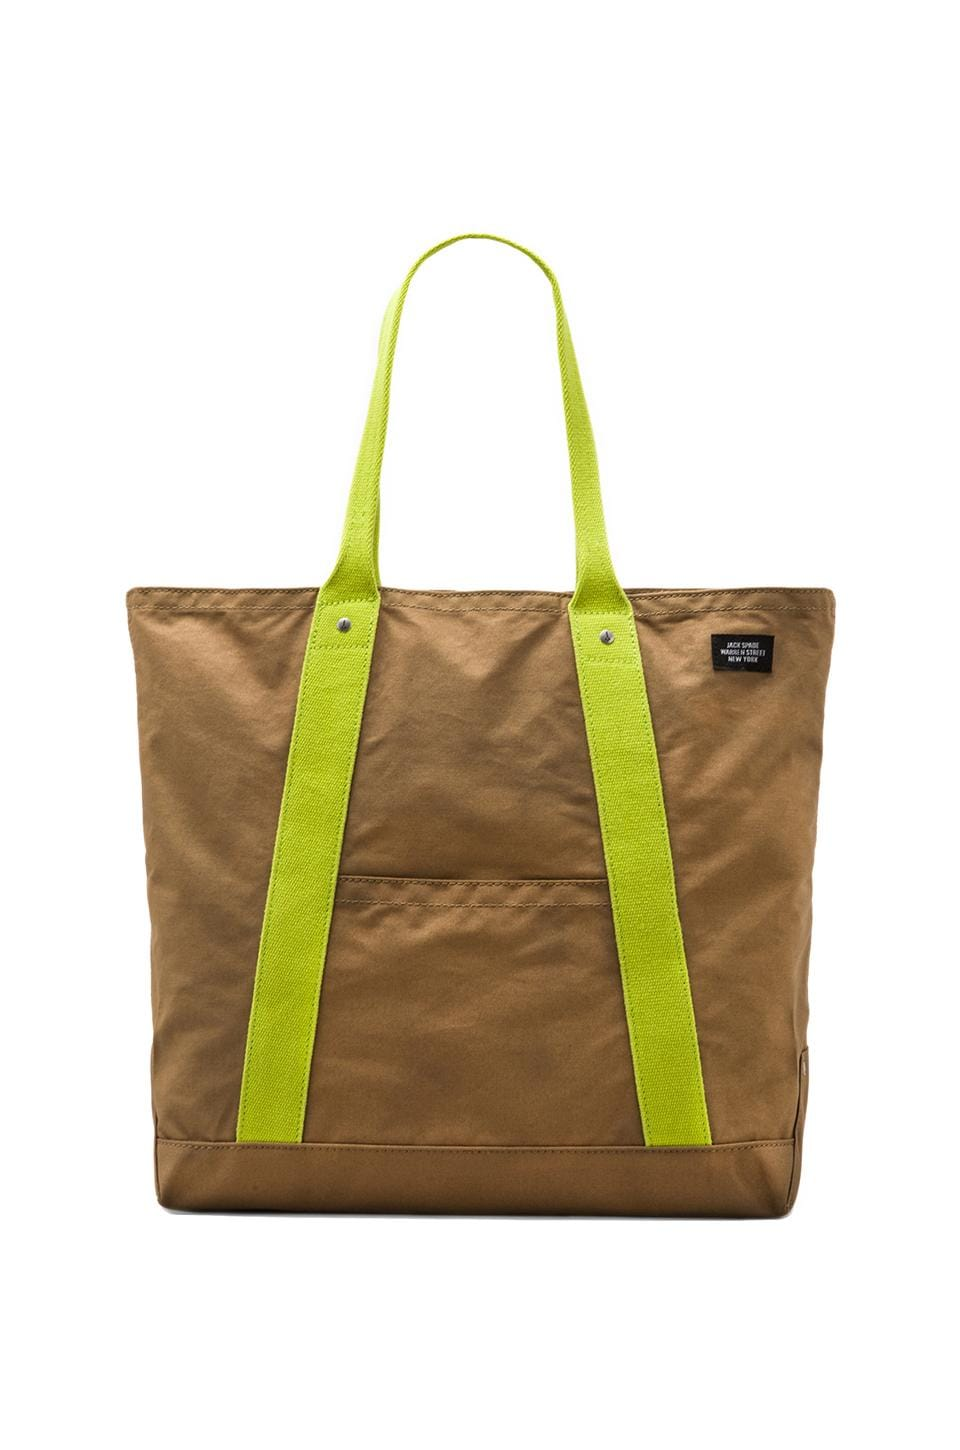 Jack Spade Basecamp Archaeology Reversible Tote in Tobacco/Leather